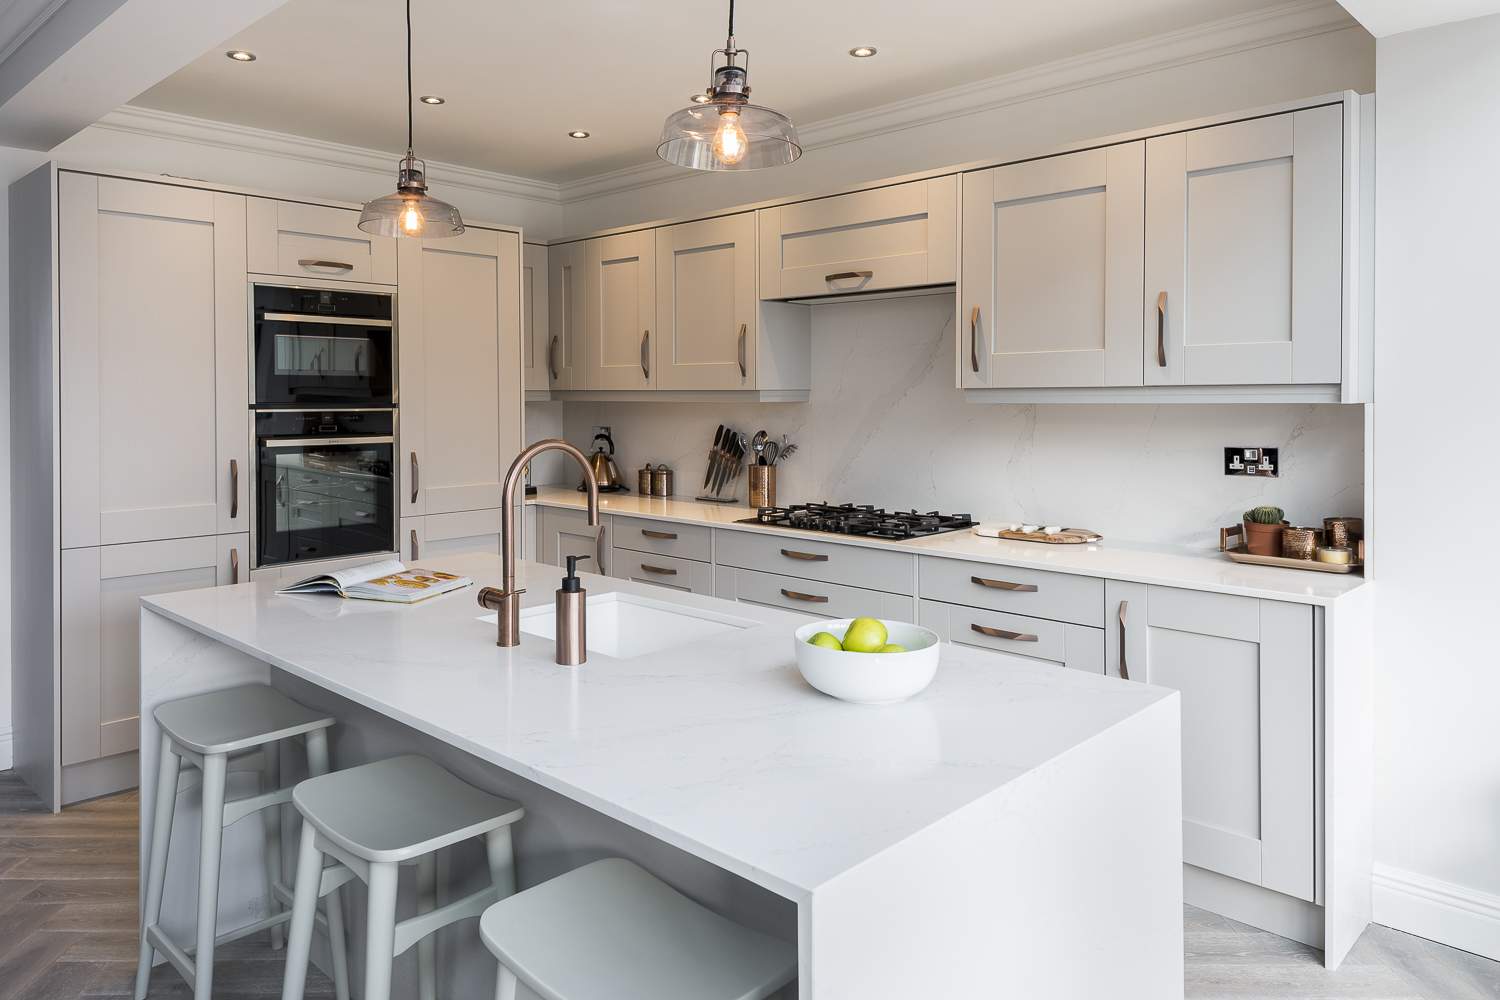 interior kitchens beautiful kitchen case study by sheraton interiors lochanna kitchens 2778